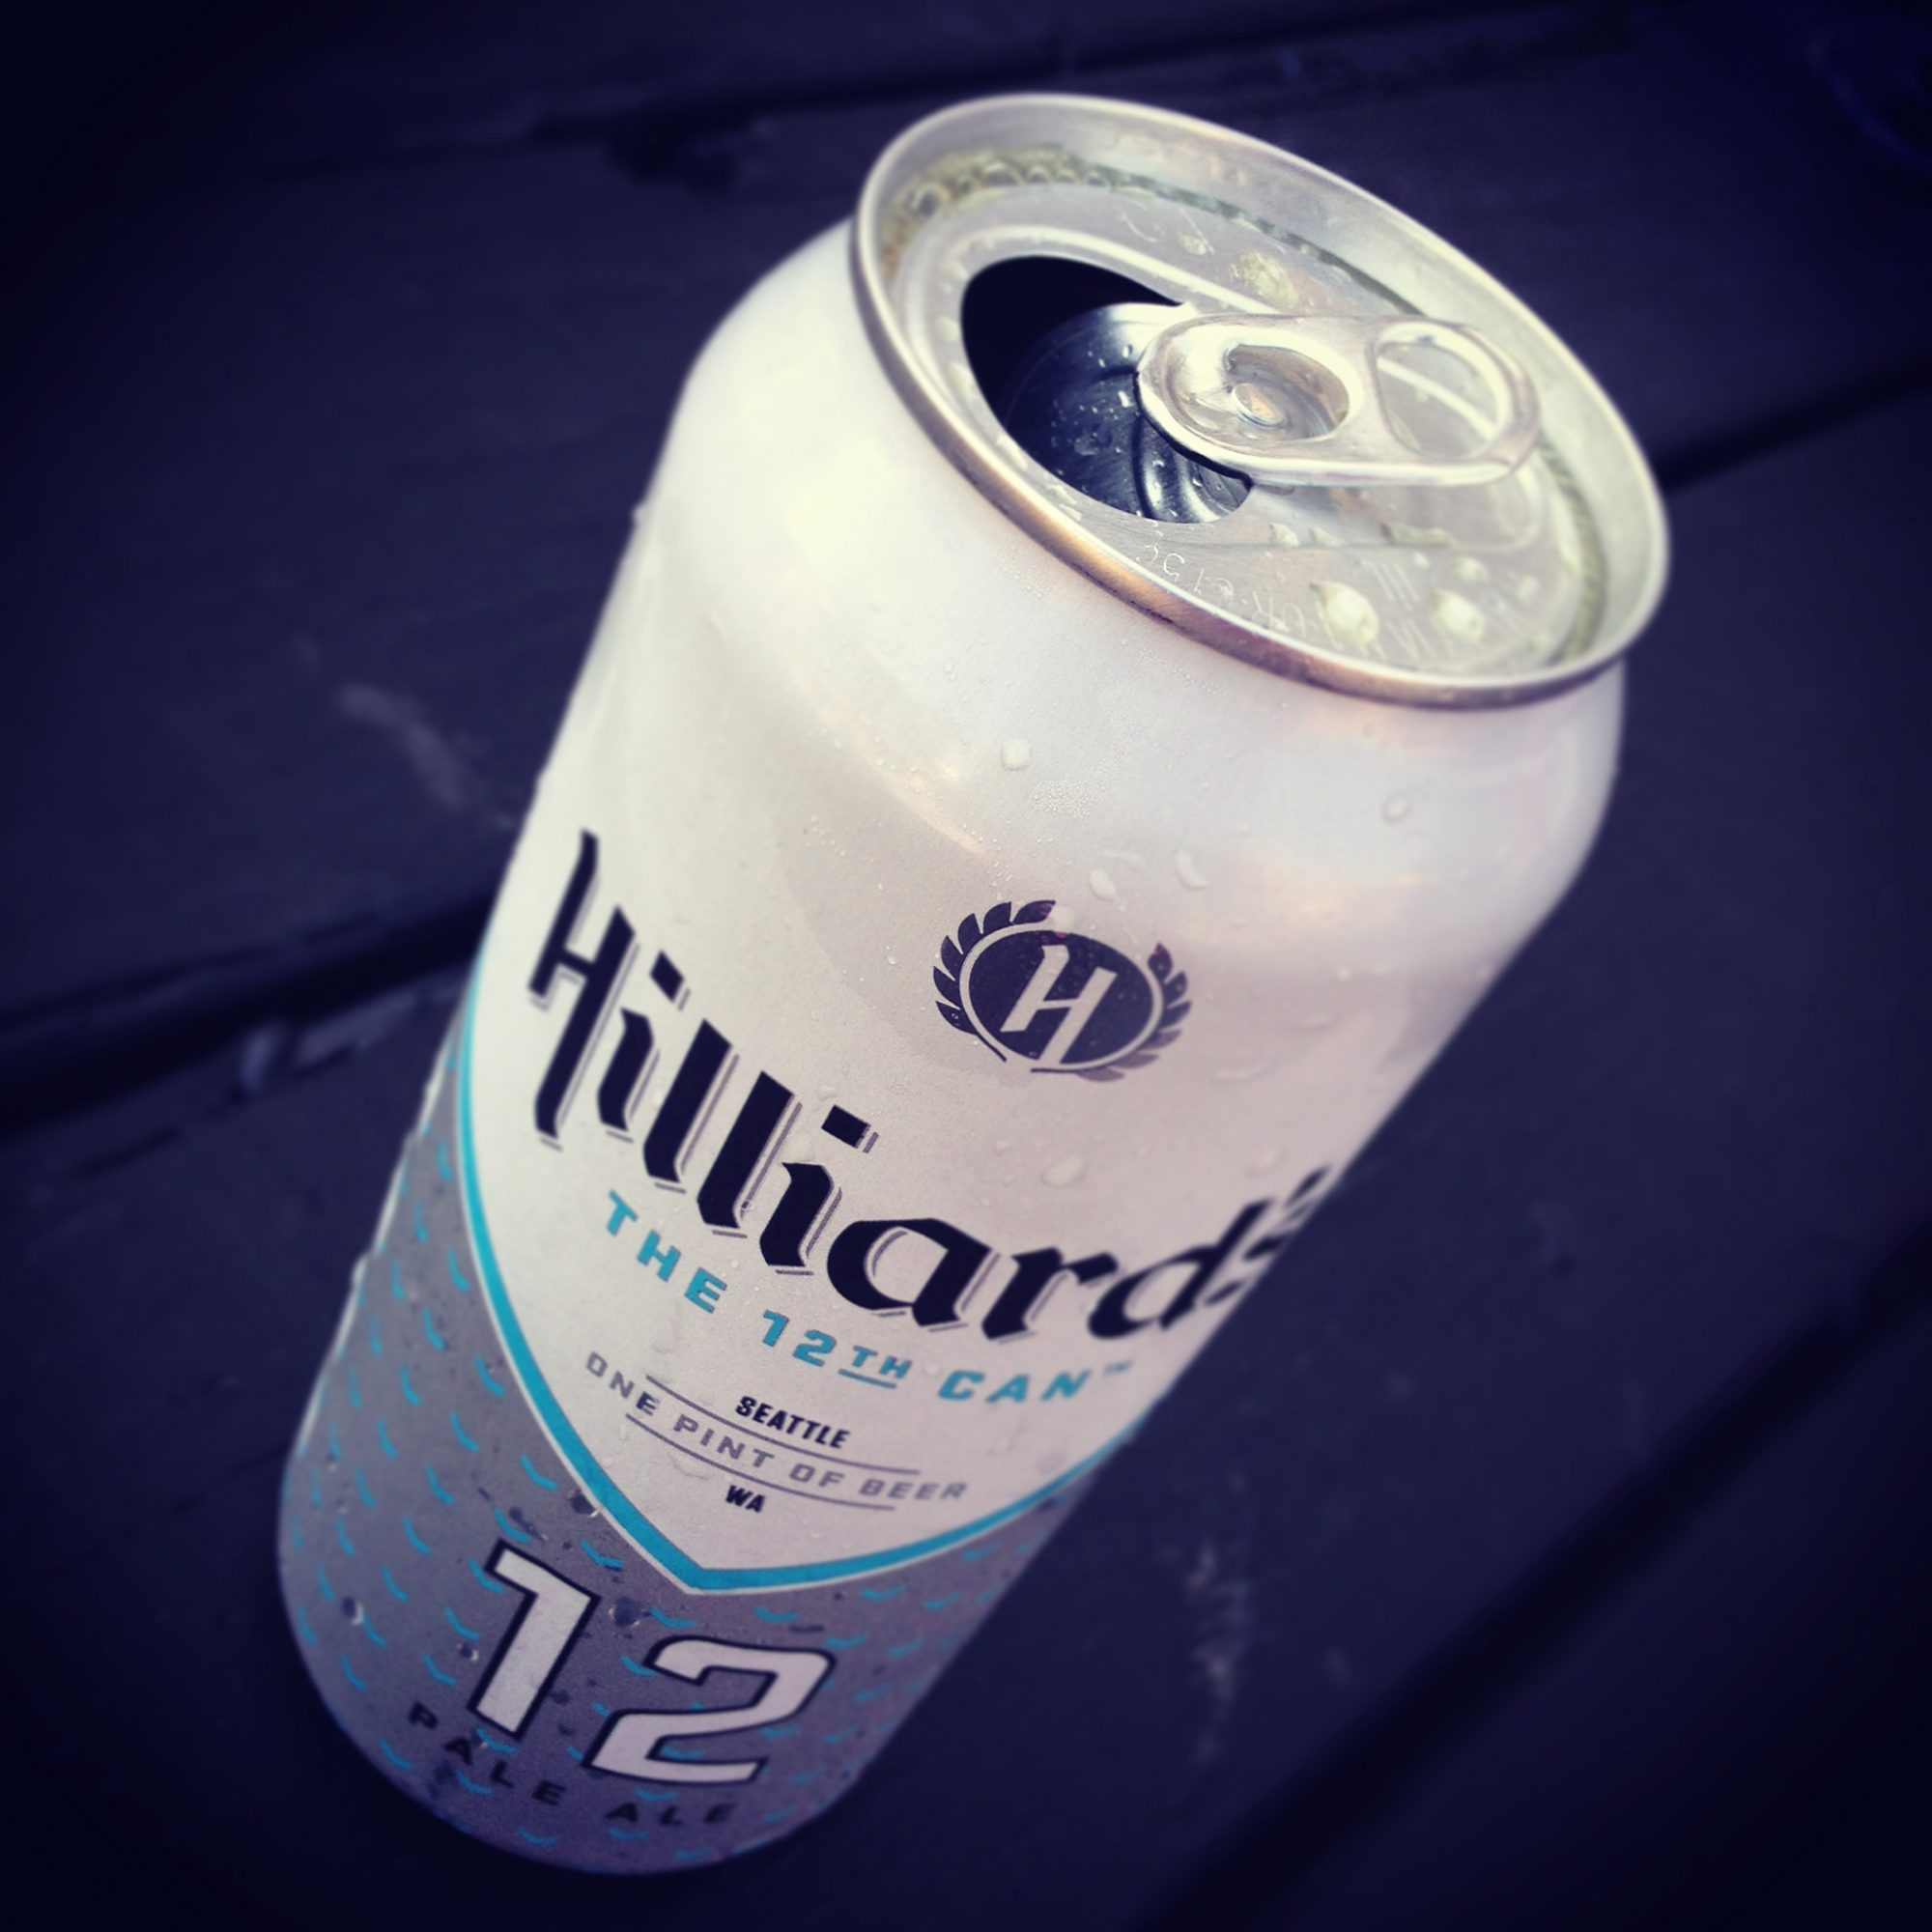 FWX 12TH CAN SEAHAWKS BEER